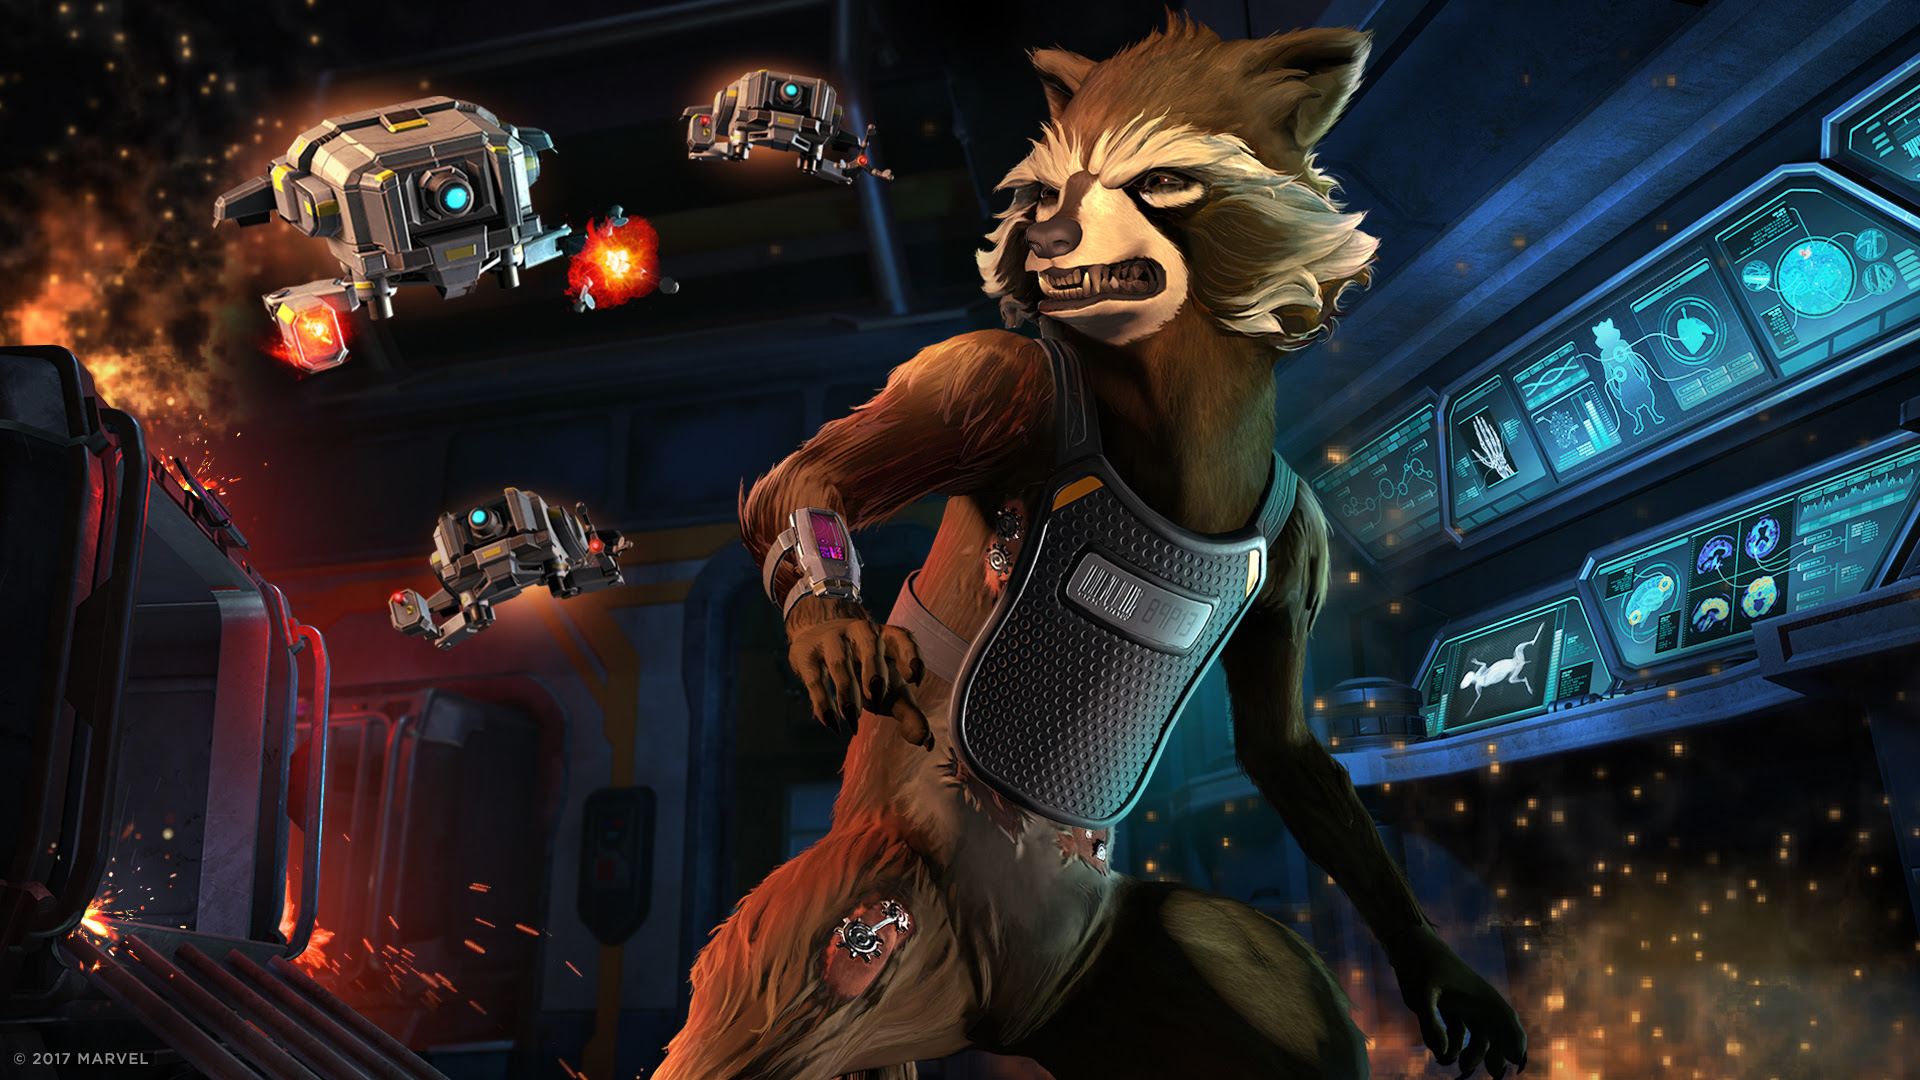 Episode two of Telltale's Guardians of the Galaxy is 'Under Pressure' screenshot